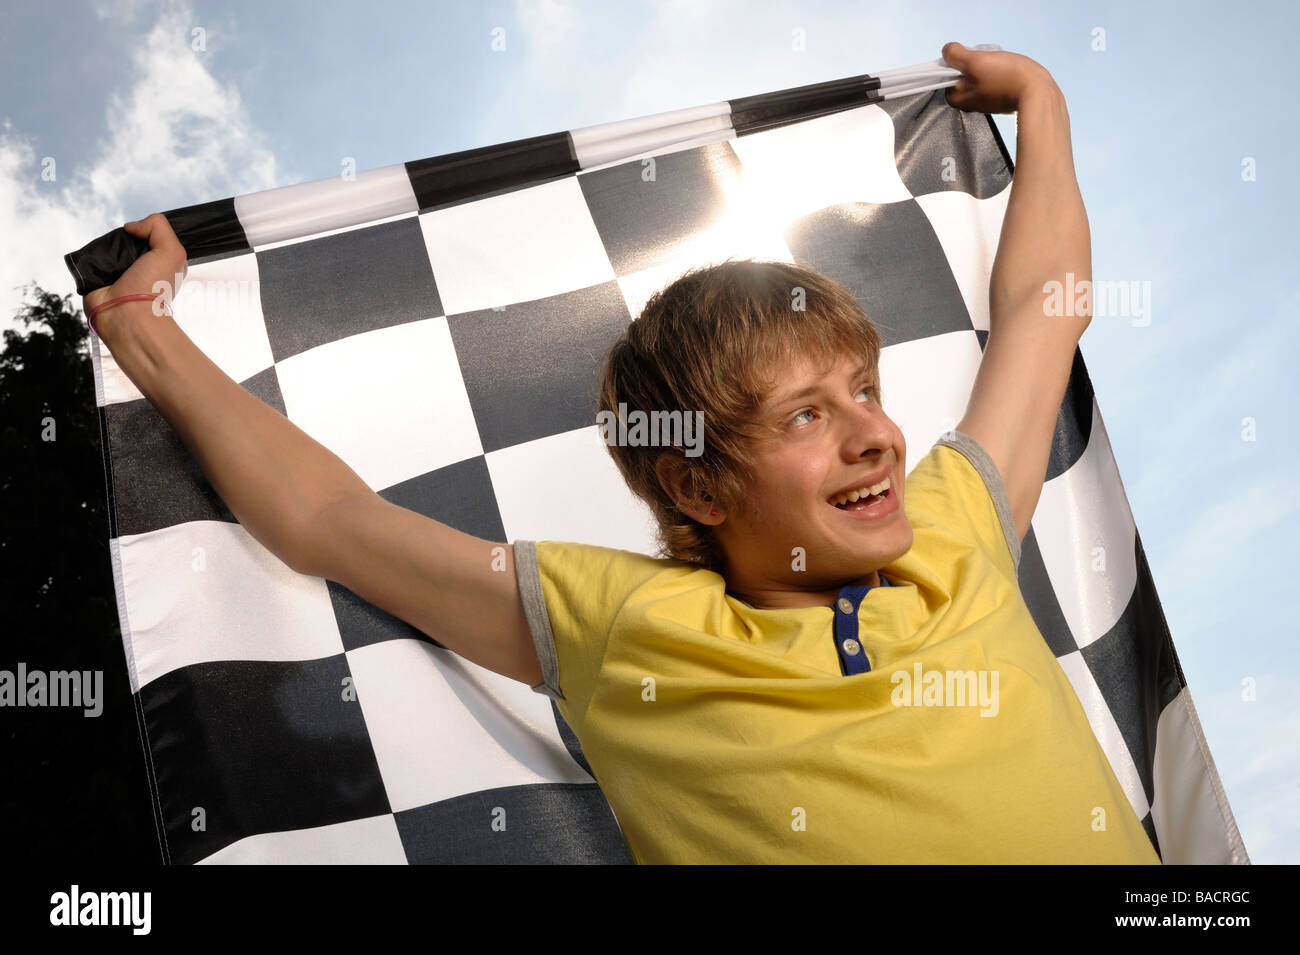 Boy waving a chequered flag - Stock Image